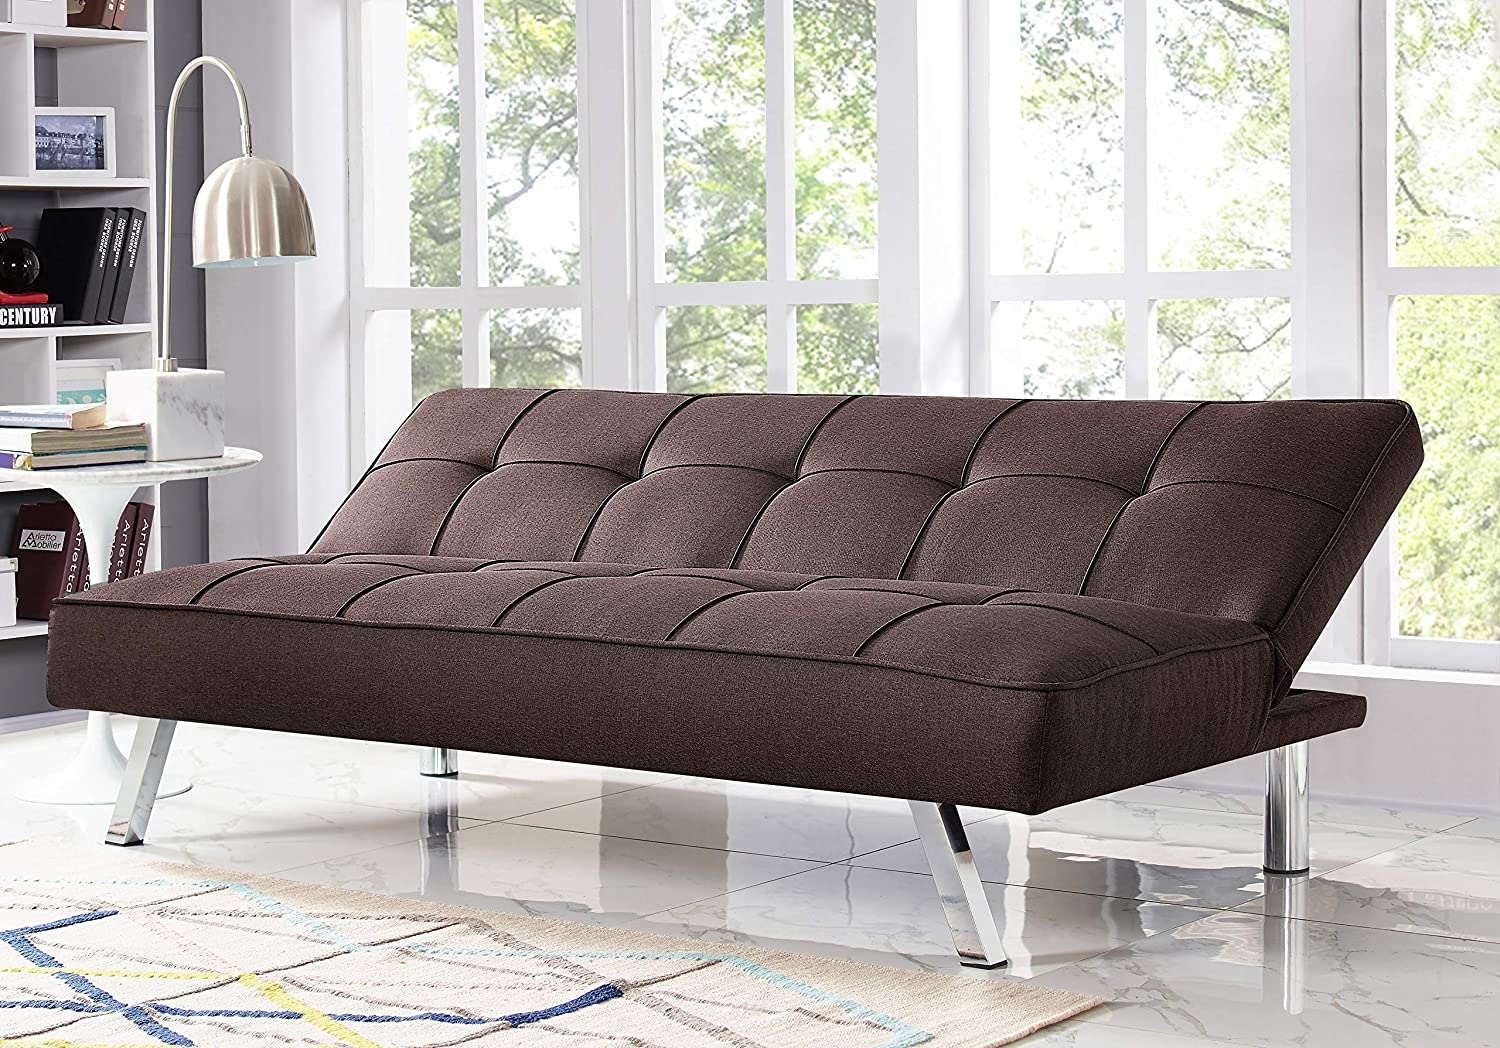 Serta Rane convertible sofa in lounge mode